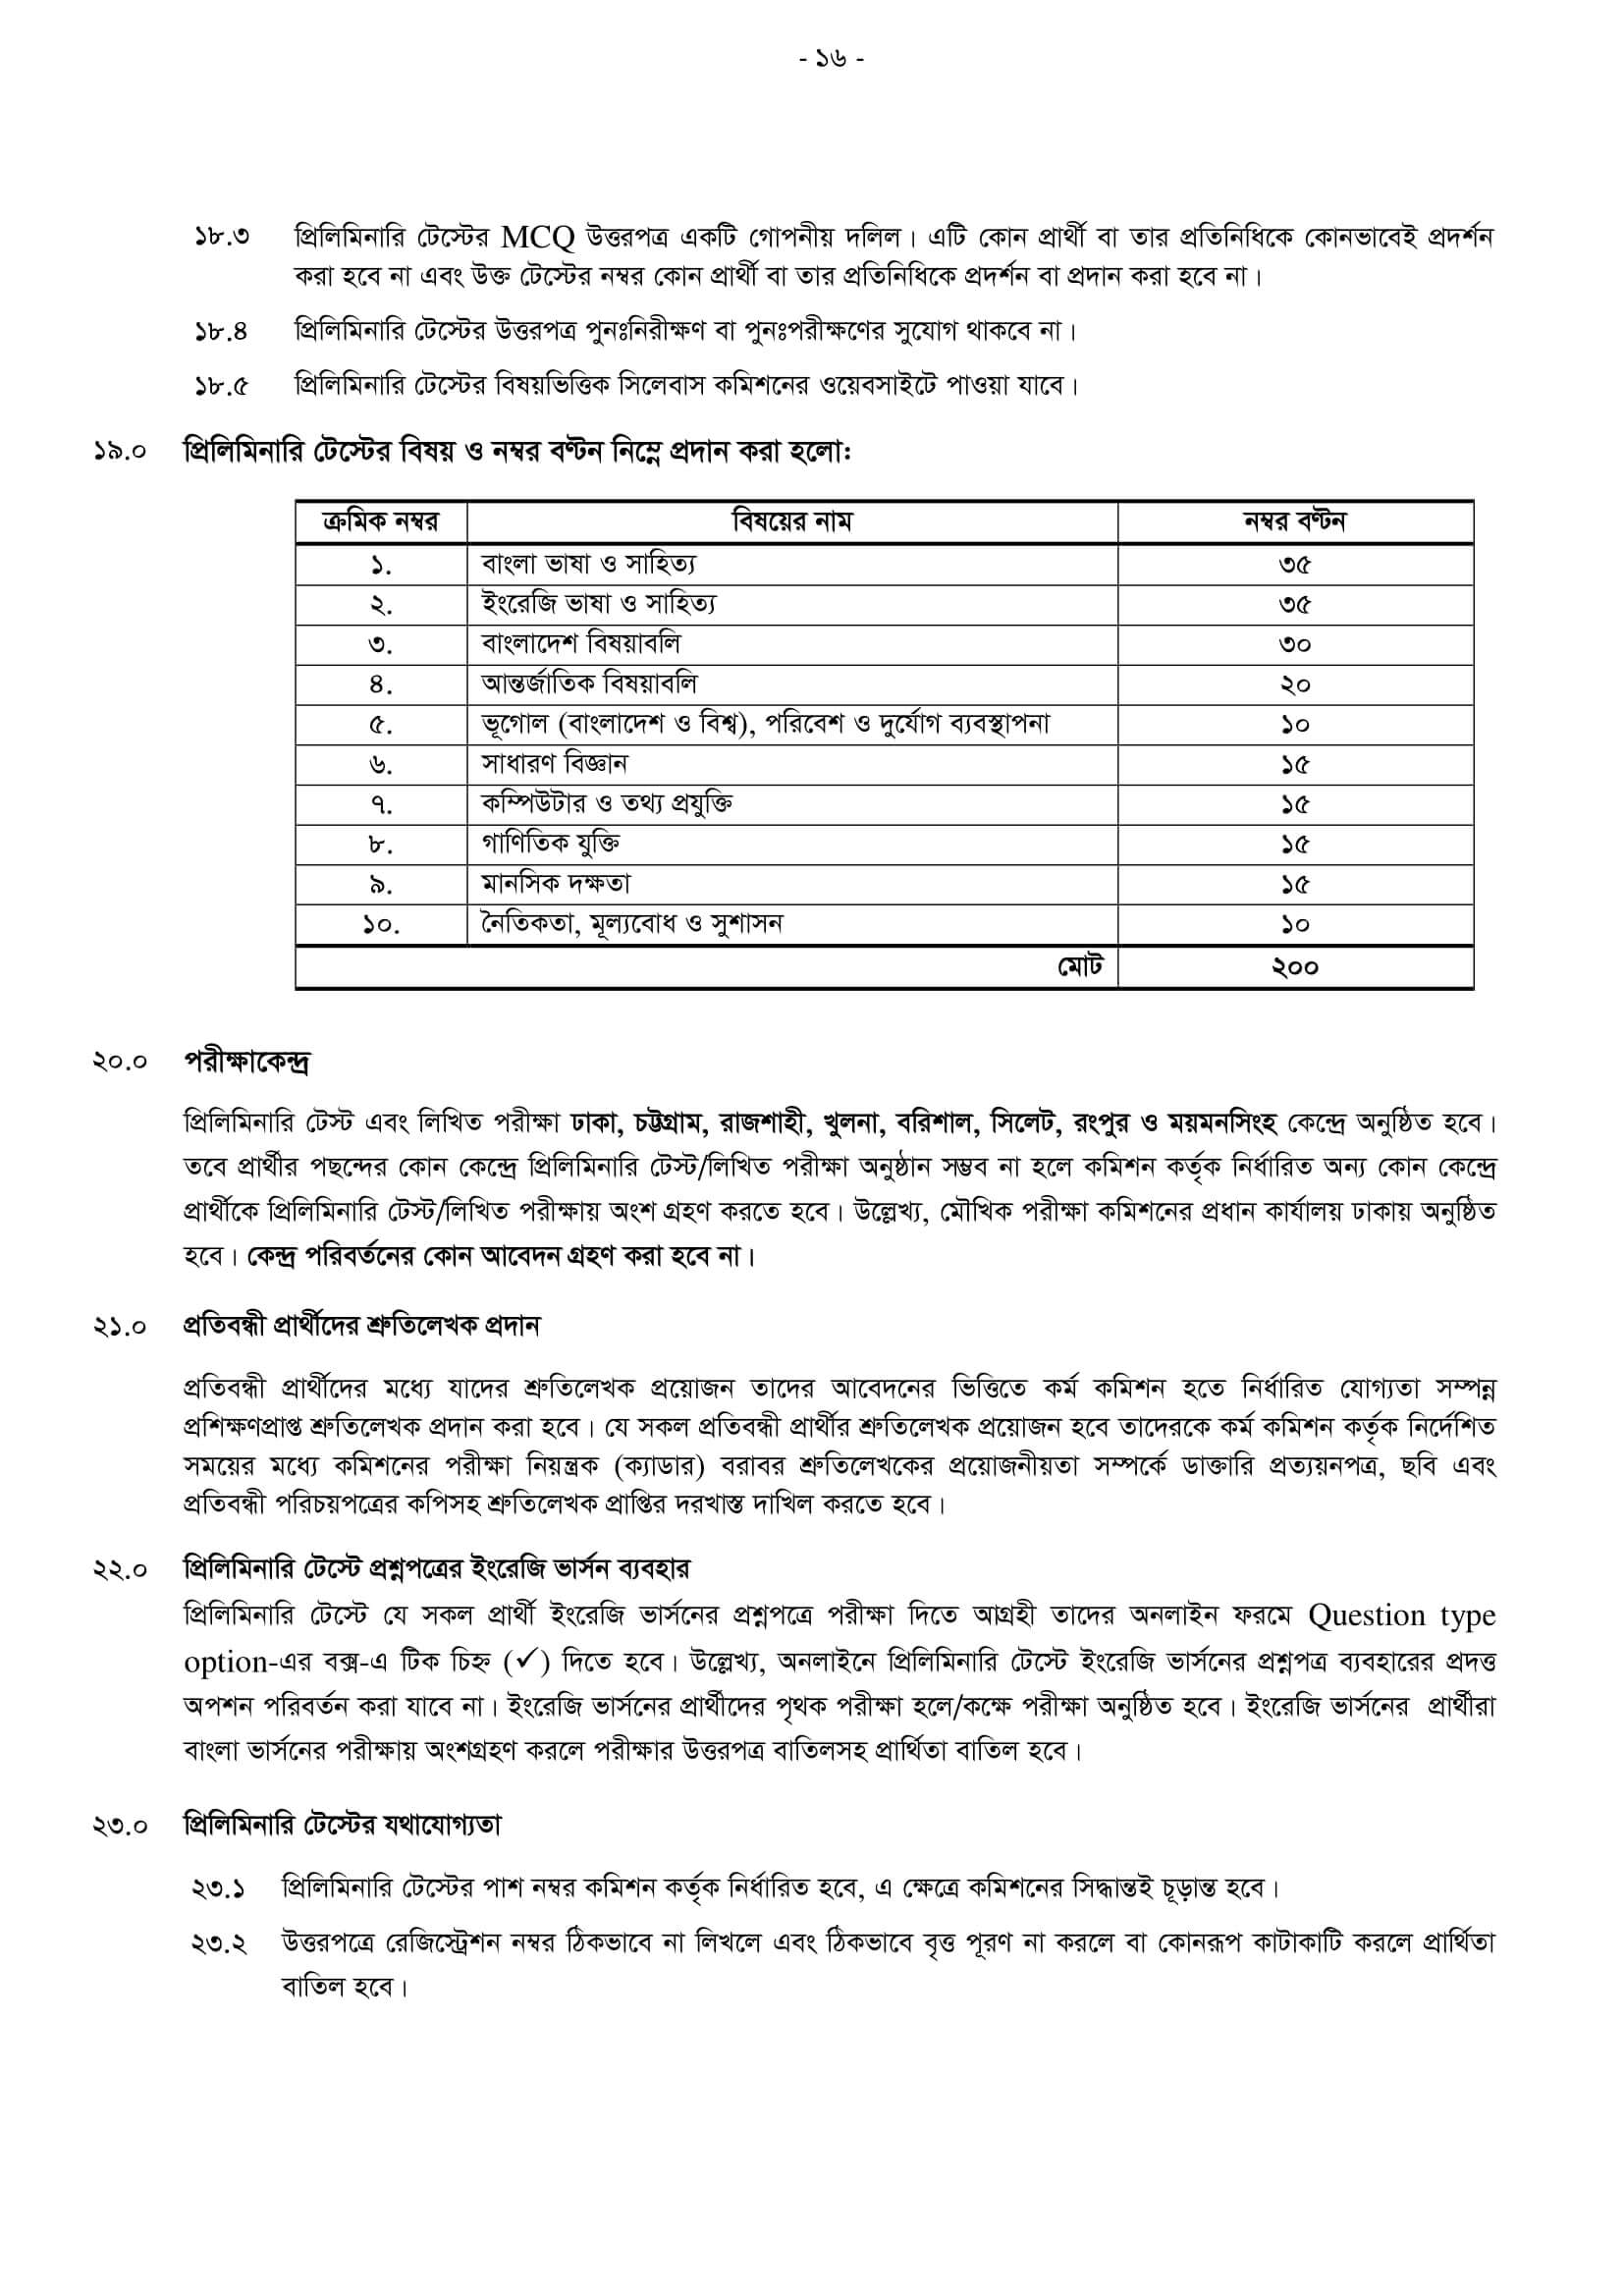 43 BCS Preliminary Syllabus and Marks Distribution